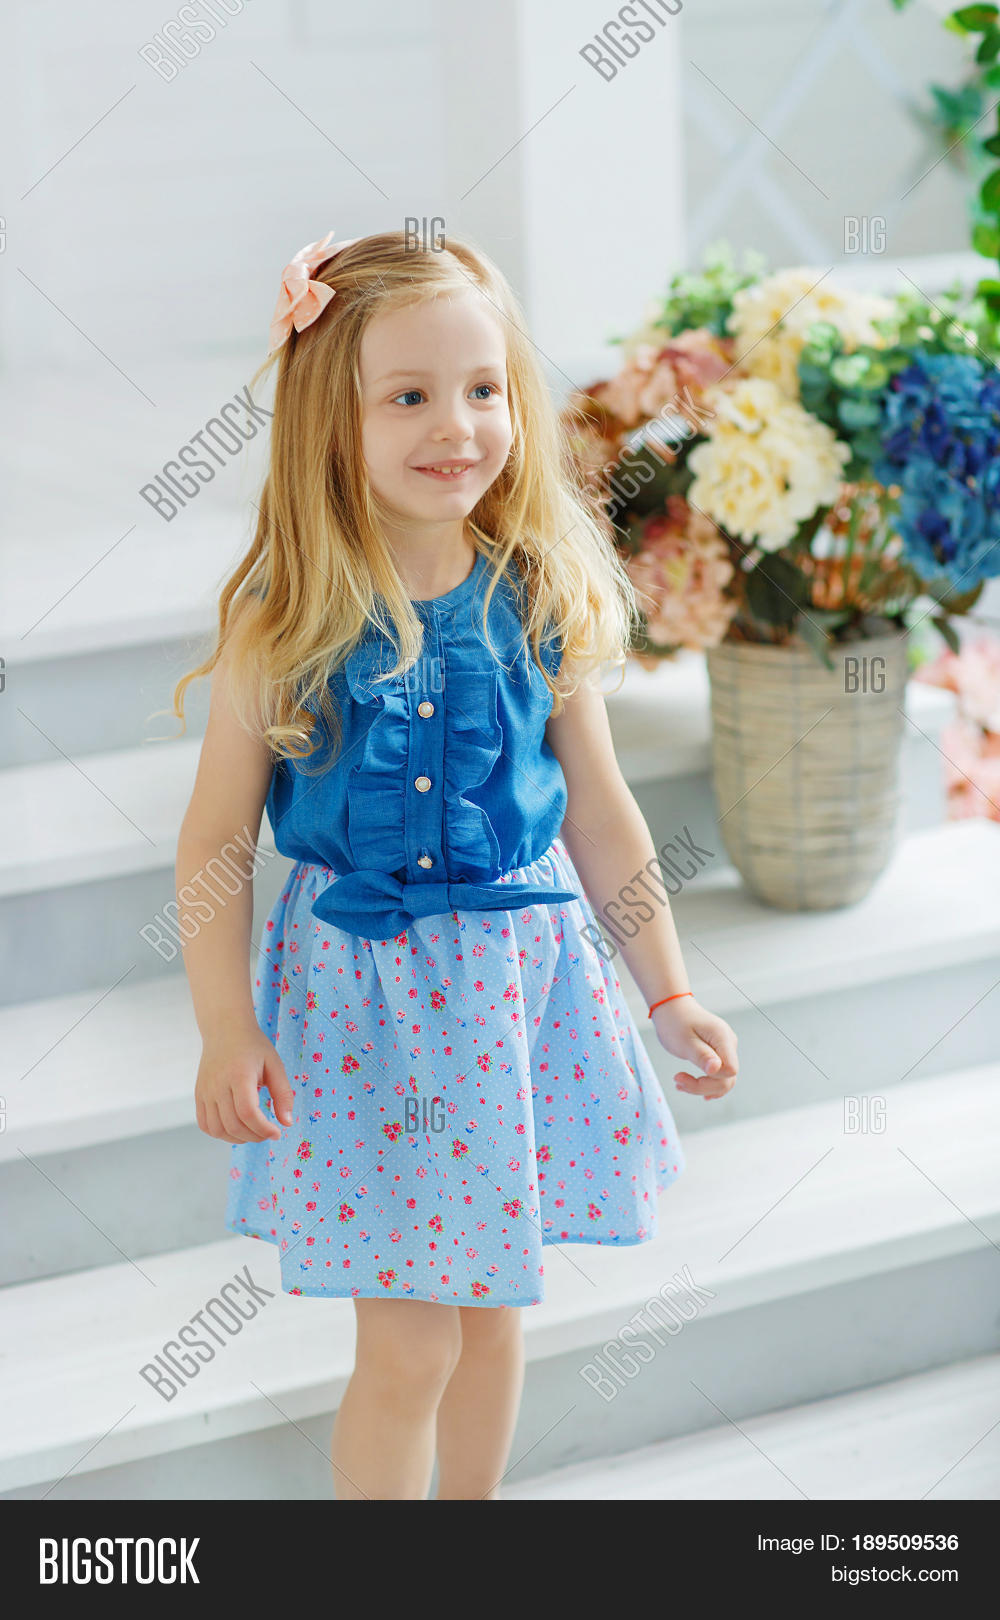 a64ef9f1375a A little girl in a blue shirt and a patterned skirt happily meets her  friends at